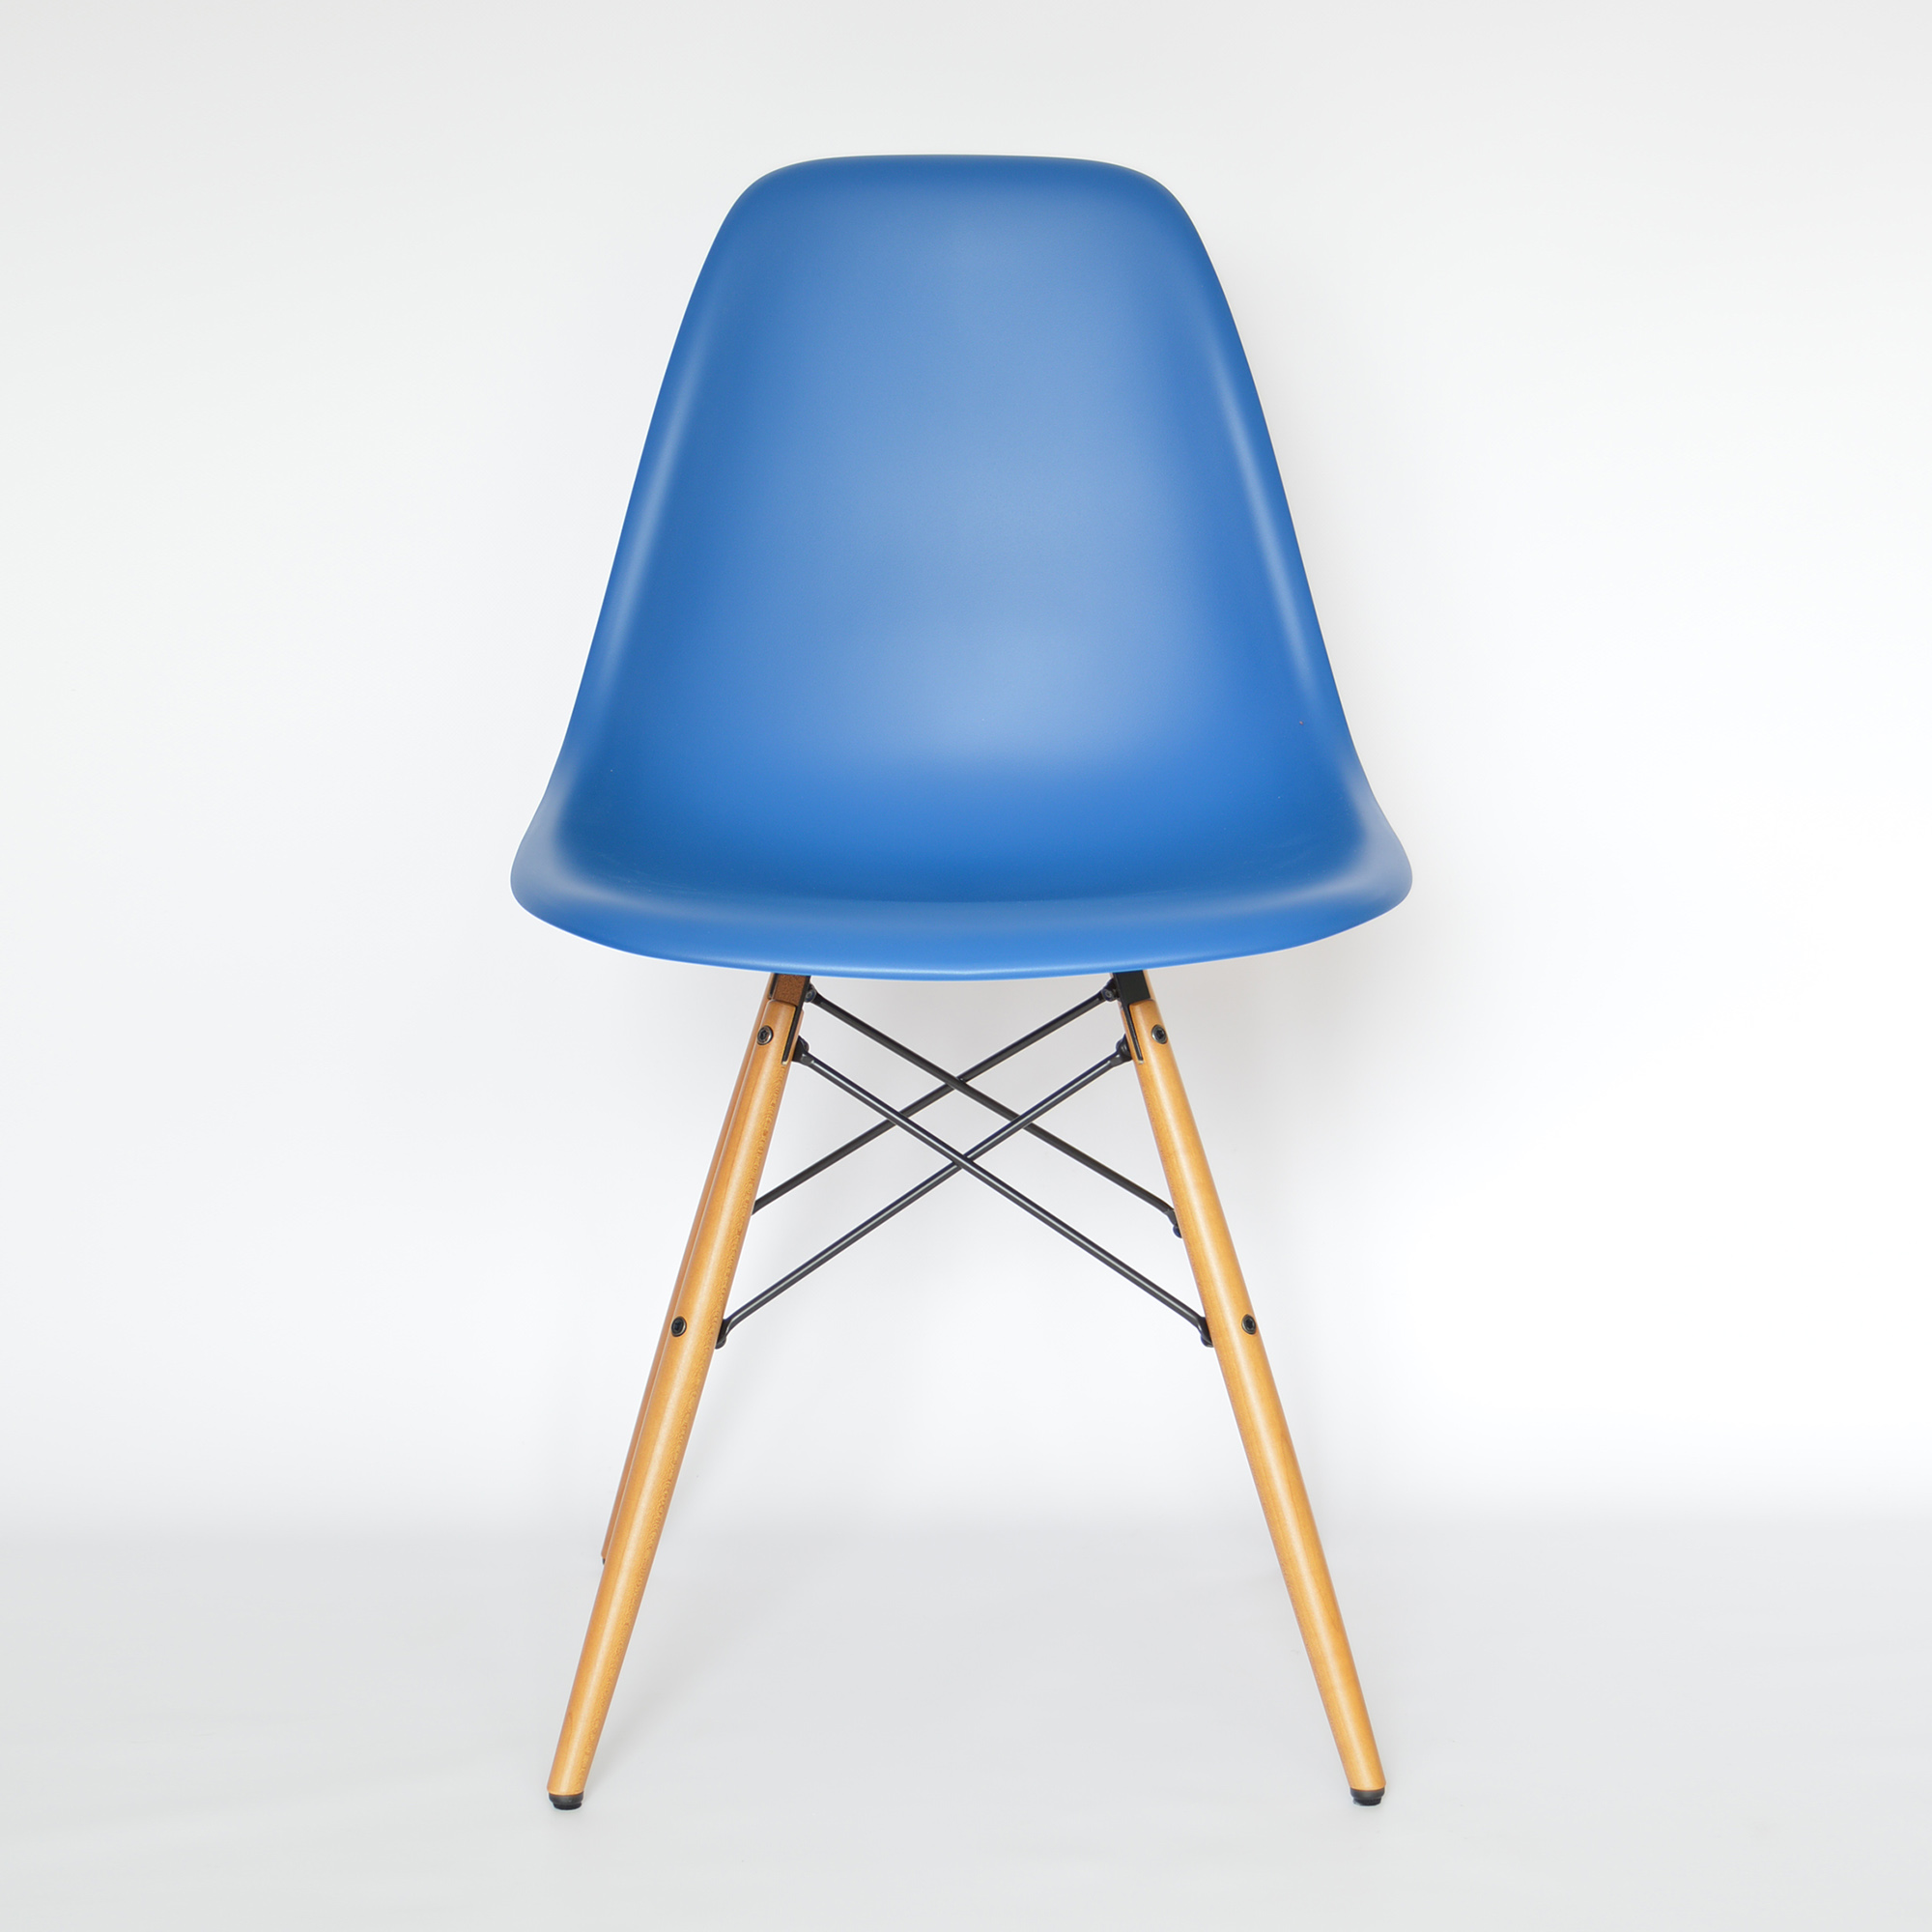 eames plastic side chair dsw ebay chairs model. Black Bedroom Furniture Sets. Home Design Ideas